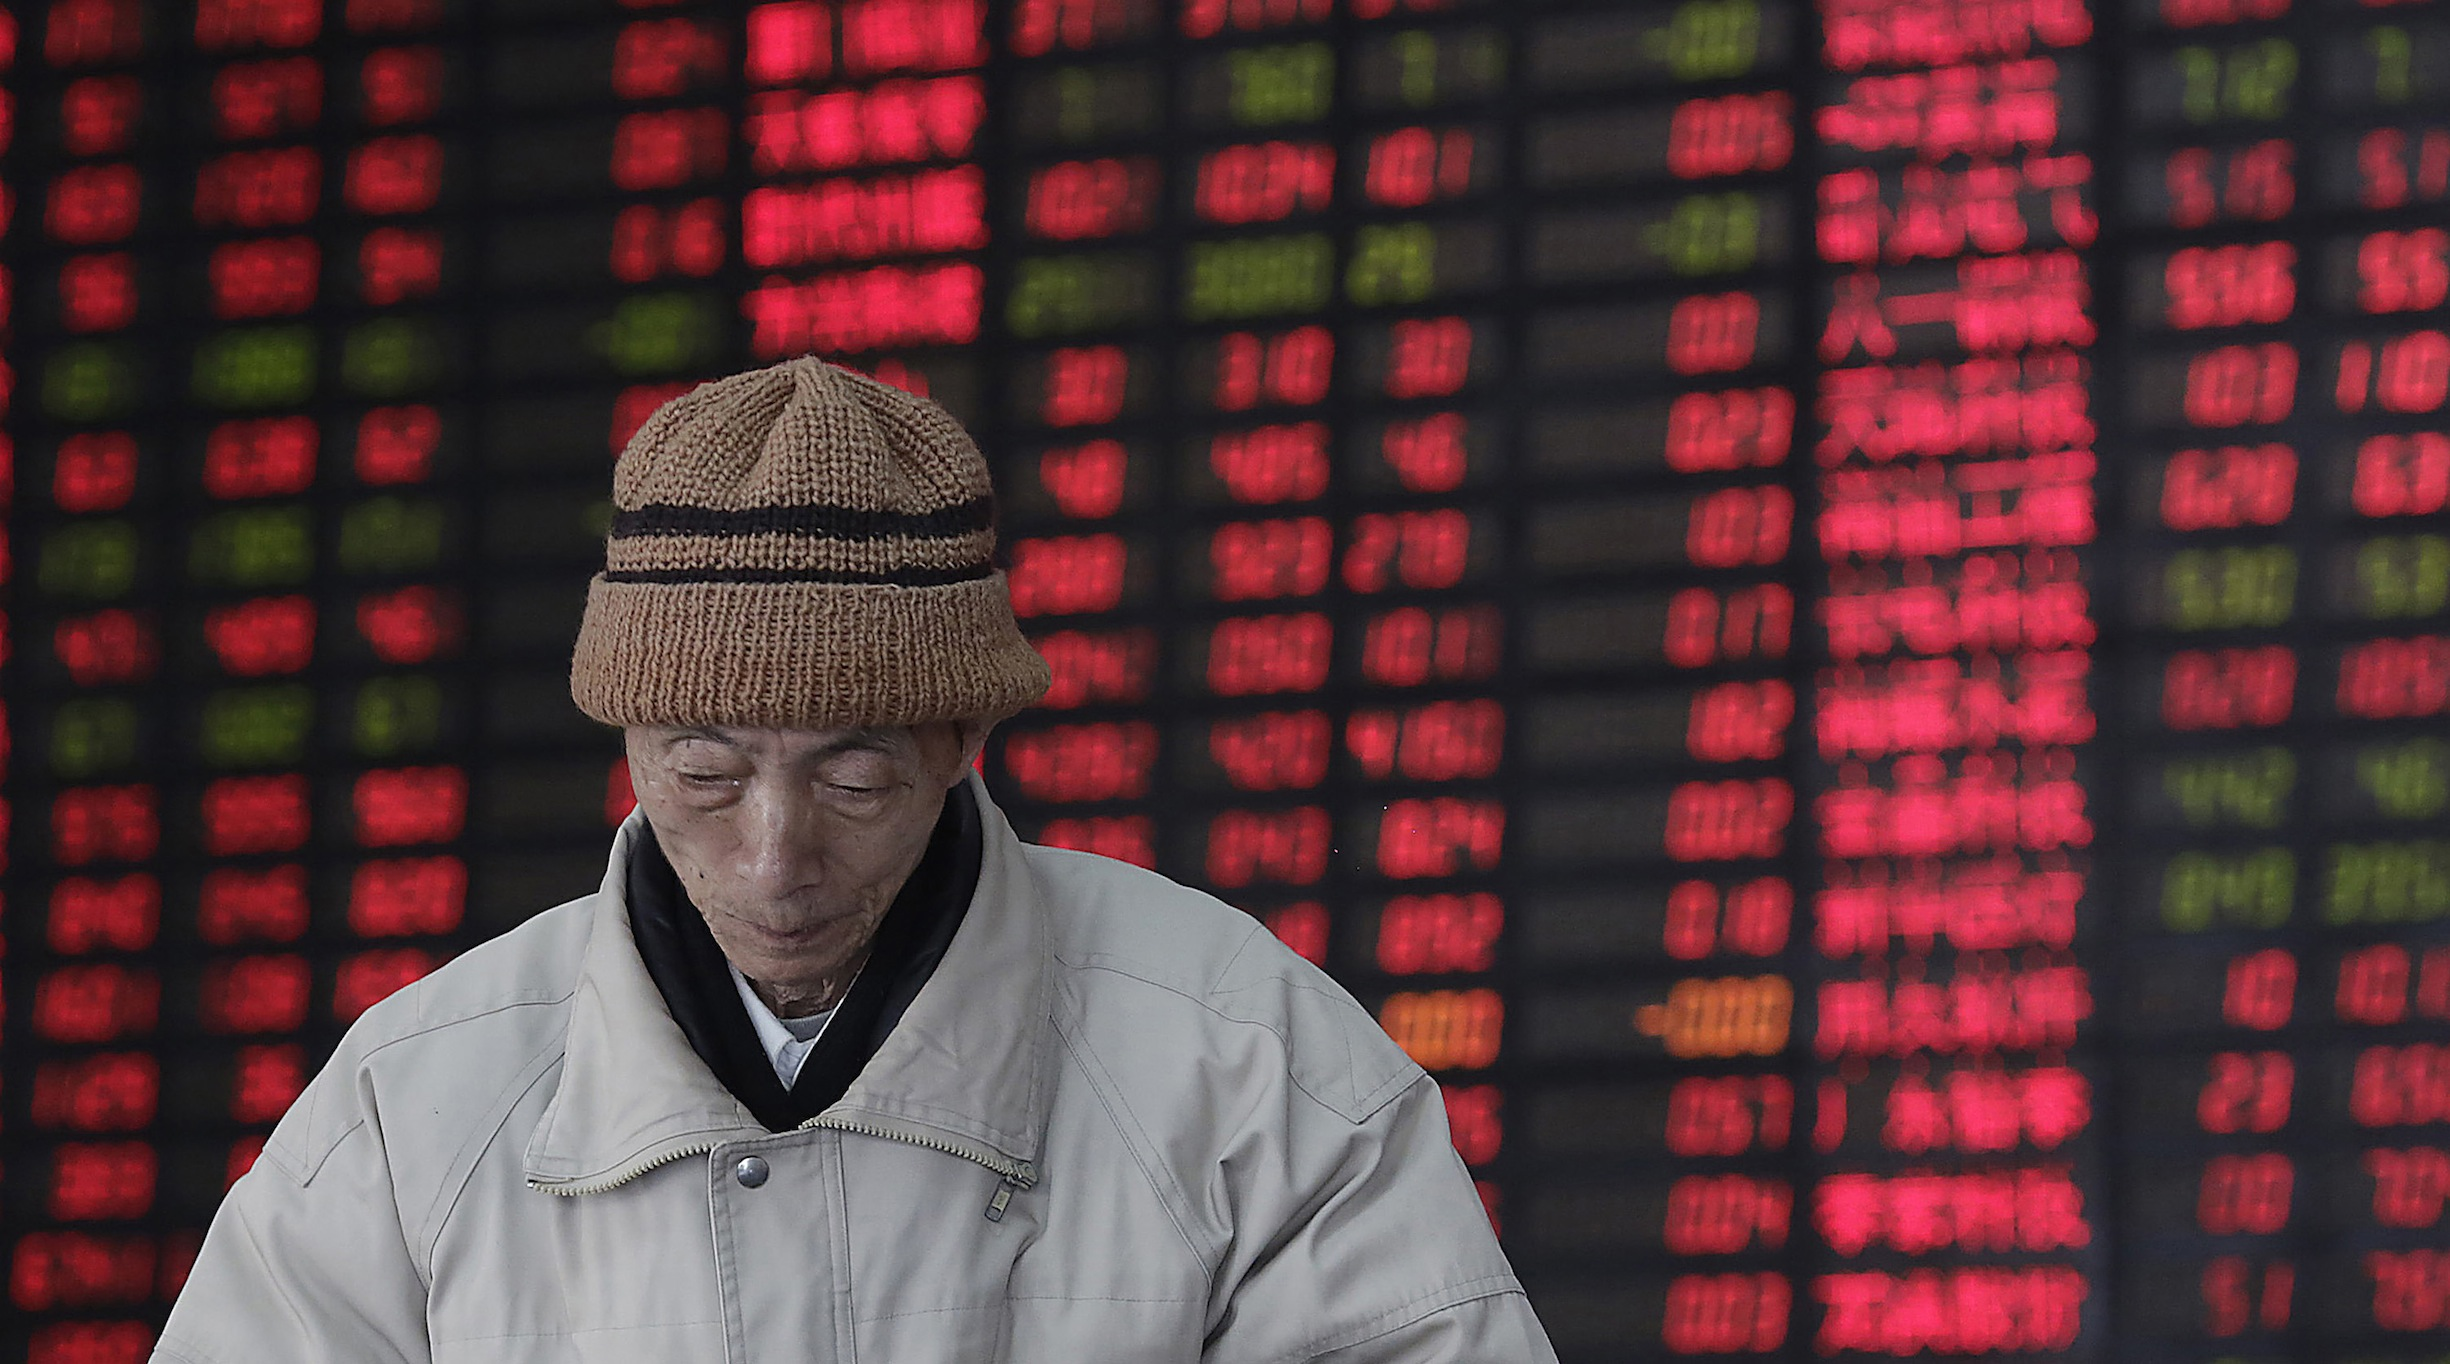 An investor walks in front of the stock price monitor at a private securities company on Wednesday March 6, 2013. The Dow's new all-time high and better economic data from the United States propelled Asian stock markets higher Wednesday. (AP Photo/Eugene Hoshiko)